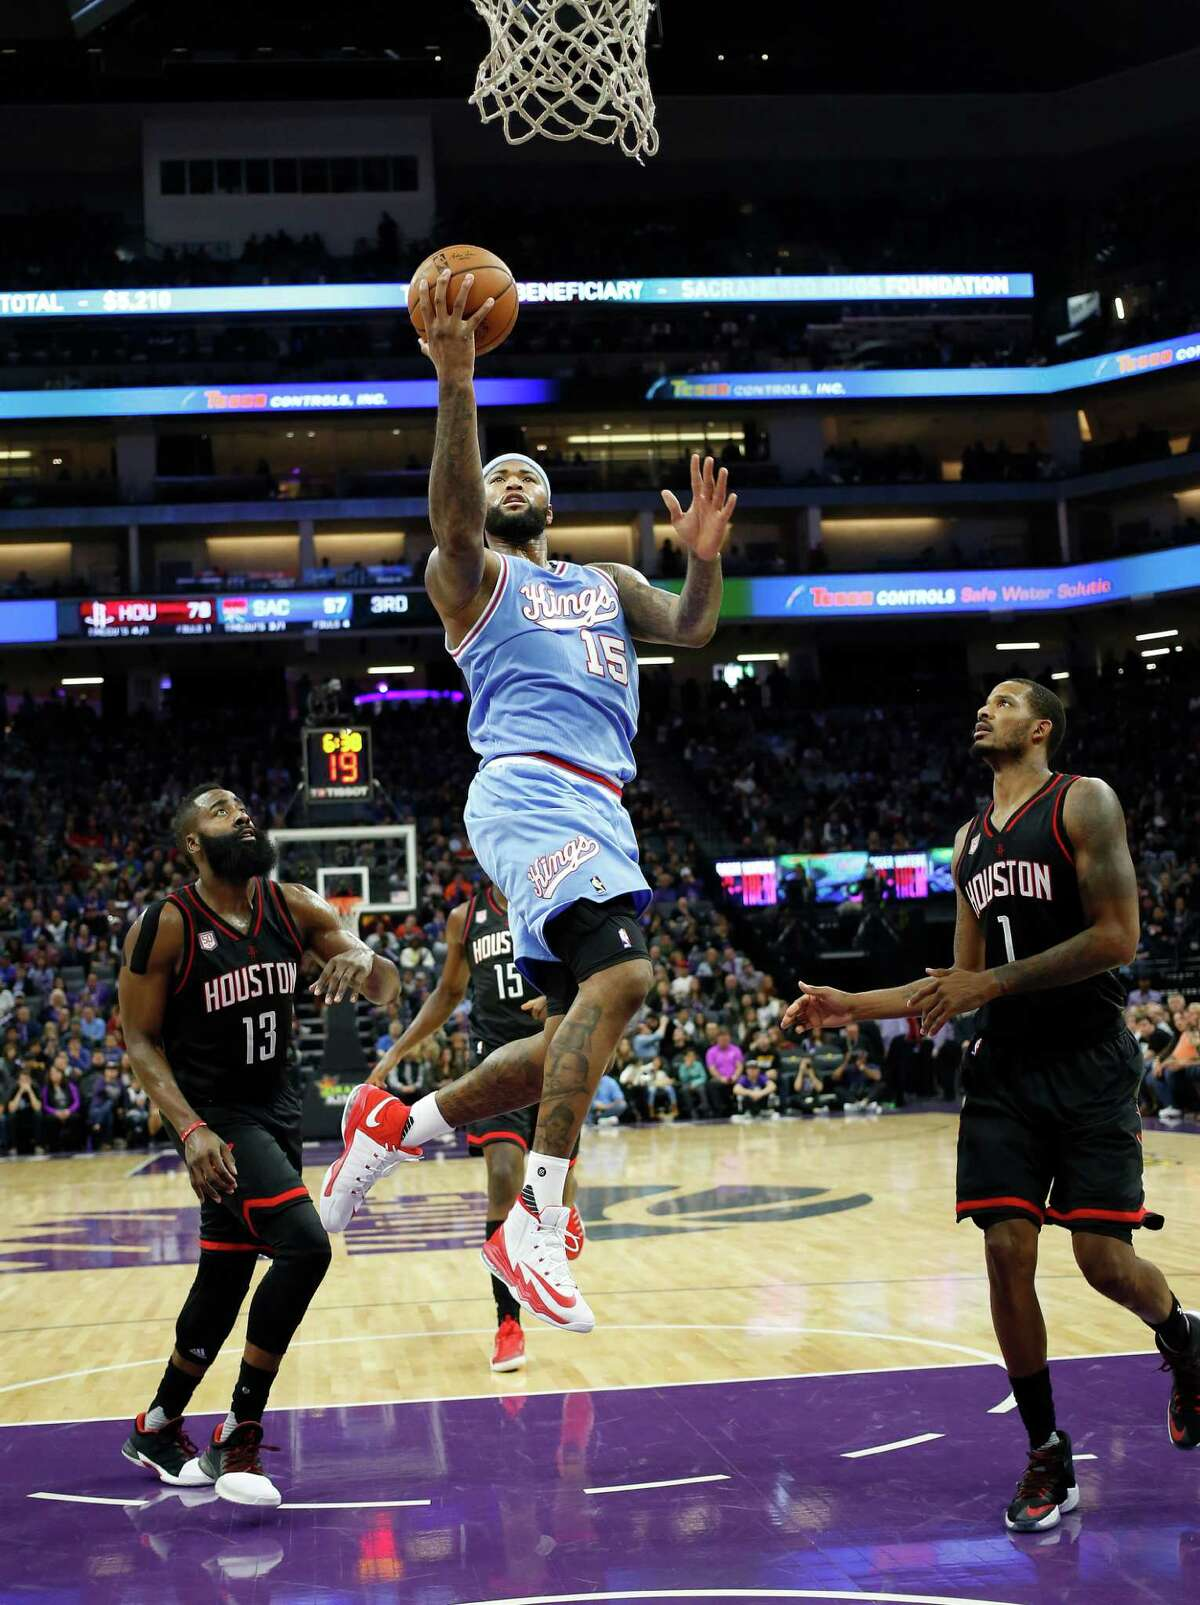 Sacramento Kings center DeMarcus Cousins, center, drives to the basket between Houston Rockets' James Harden, left, and Trevor Ariza during the second half of an NBA basketball game in Sacramento, Calif., Friday, Nov. 25, 2016. The Rockets won 117-104. (AP Photo/Rich Pedroncelli)